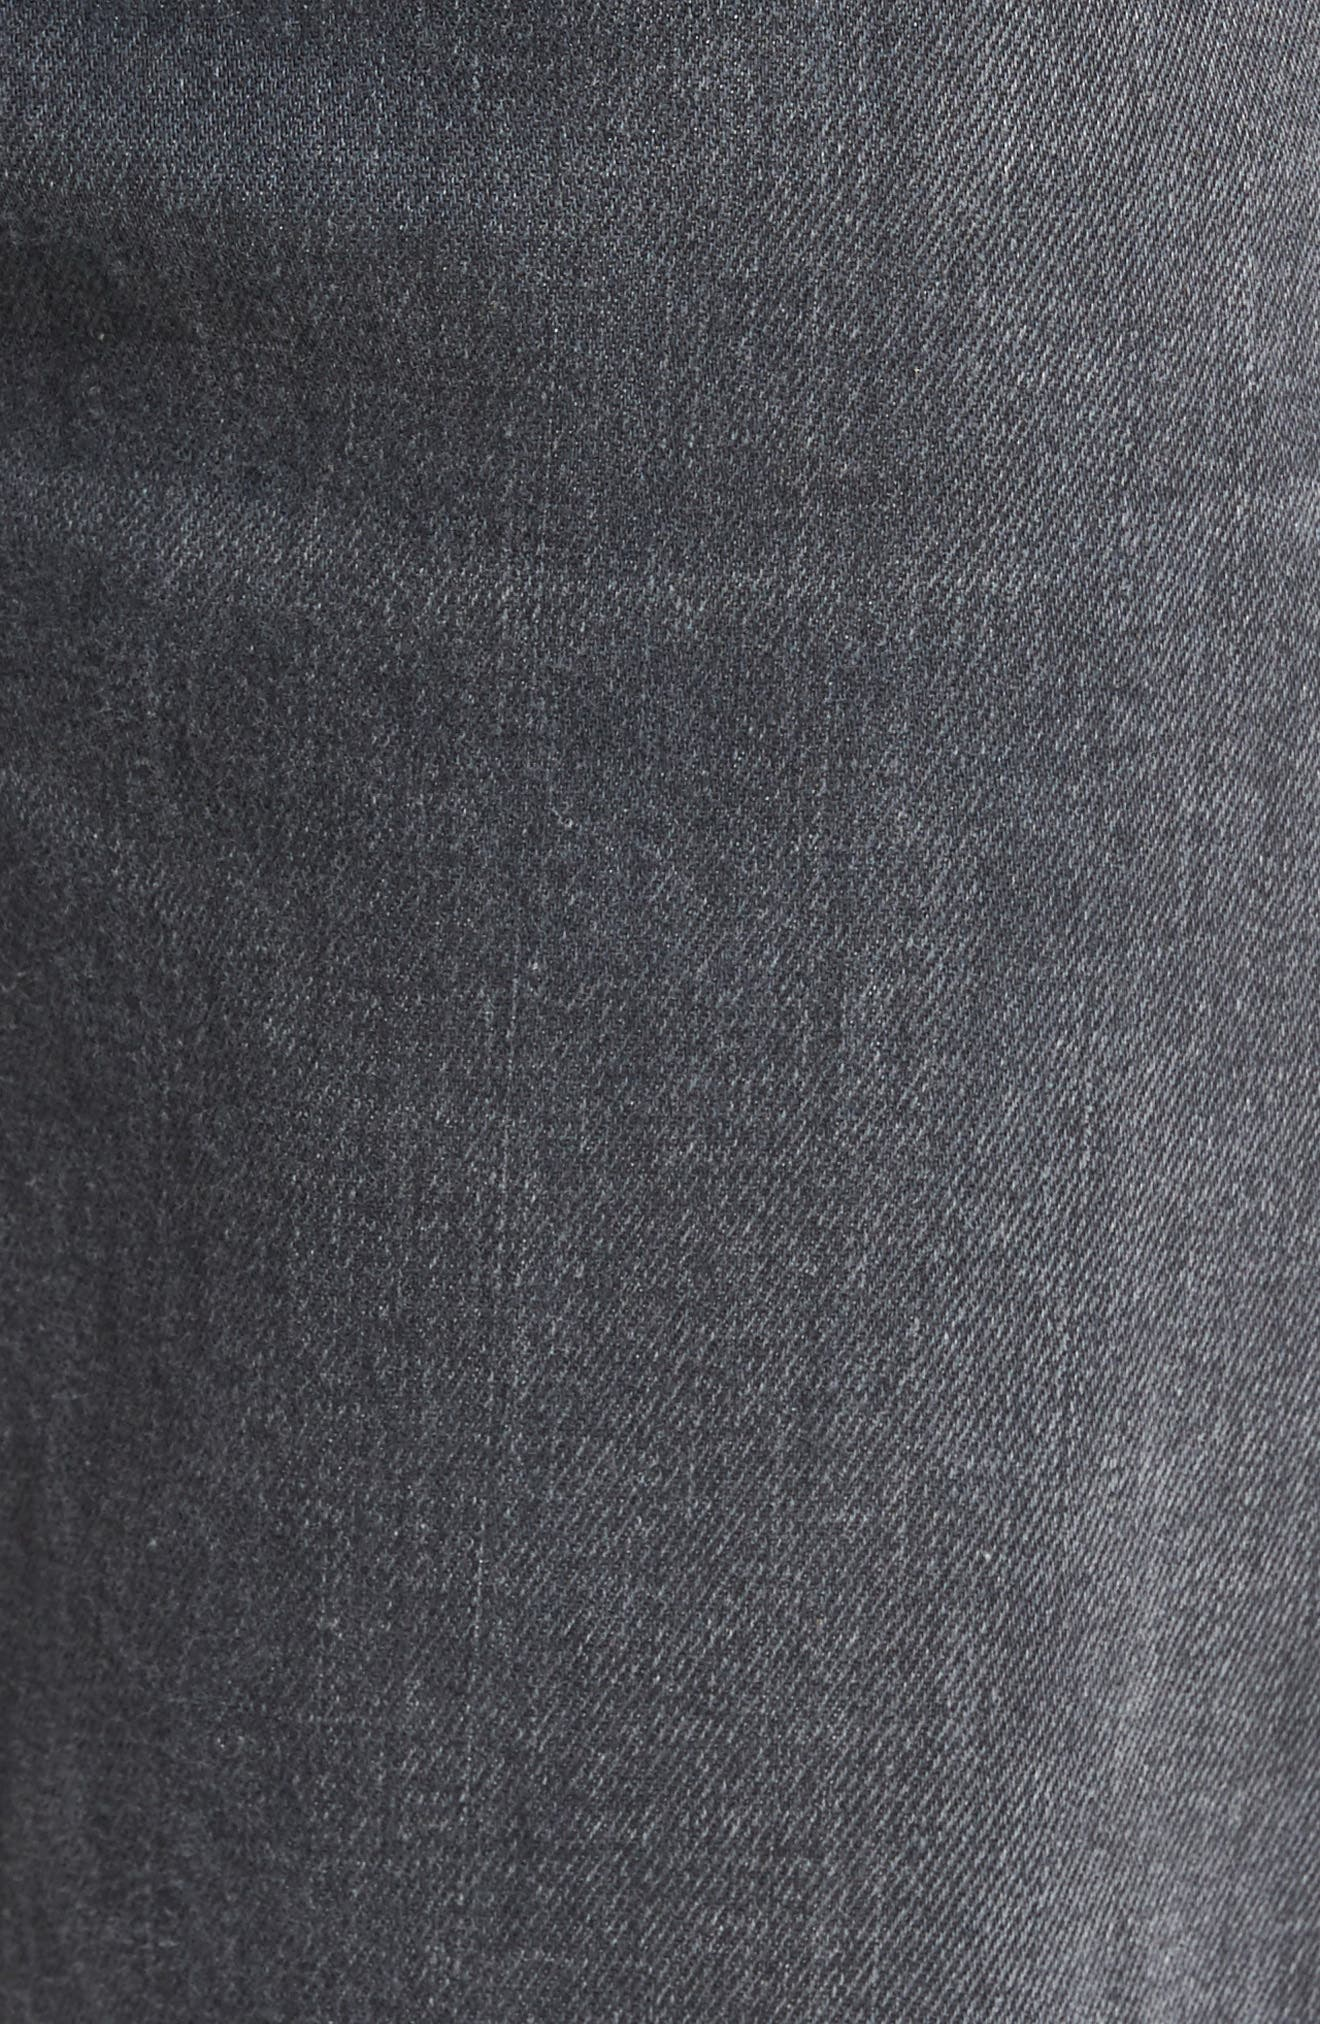 Bowery Slim Fit Jeans,                             Alternate thumbnail 5, color,                             022